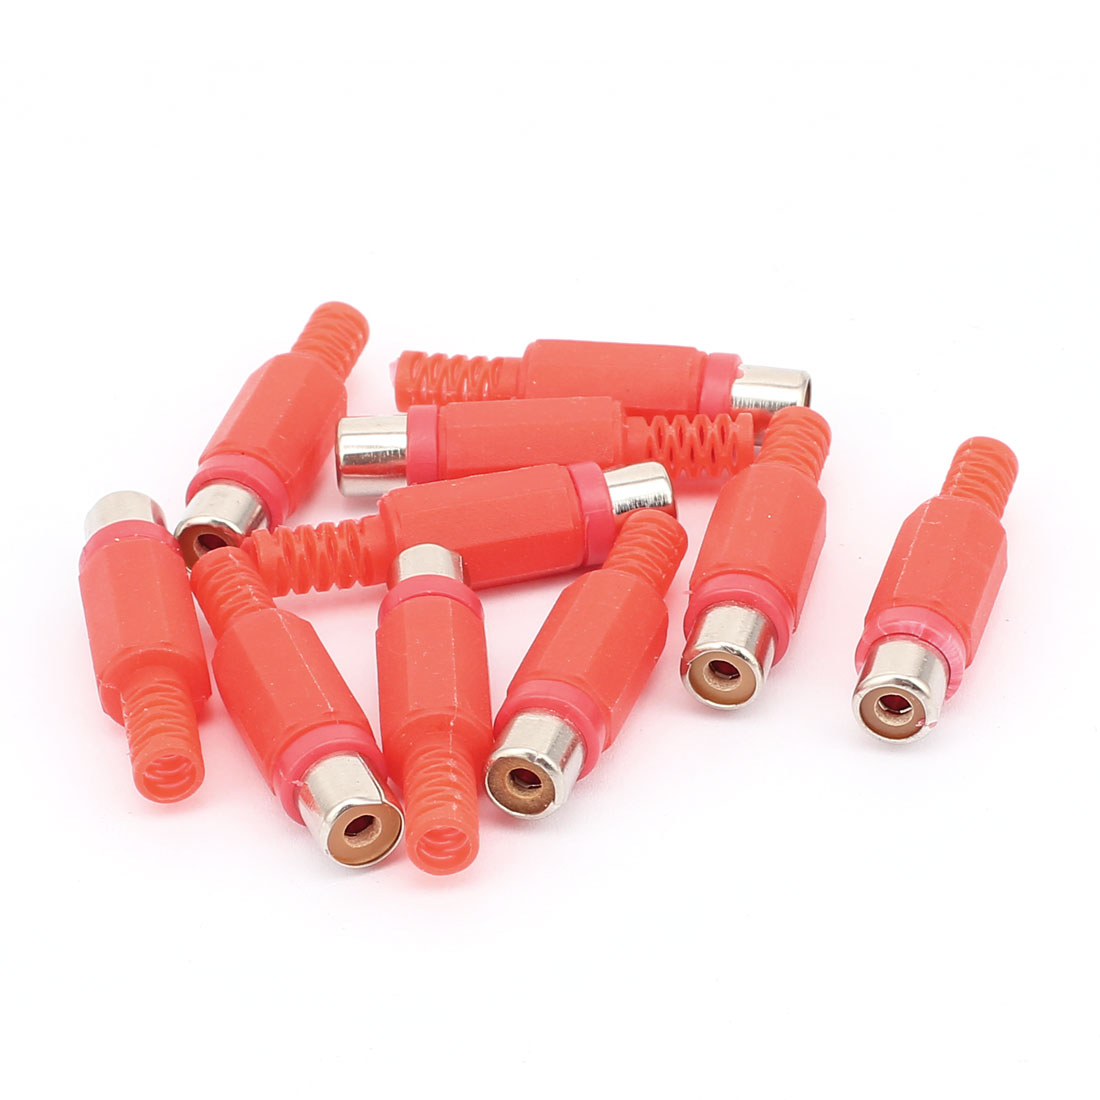 10PCS Red RCA Female Jack Audio Video Adapter Converter Connector